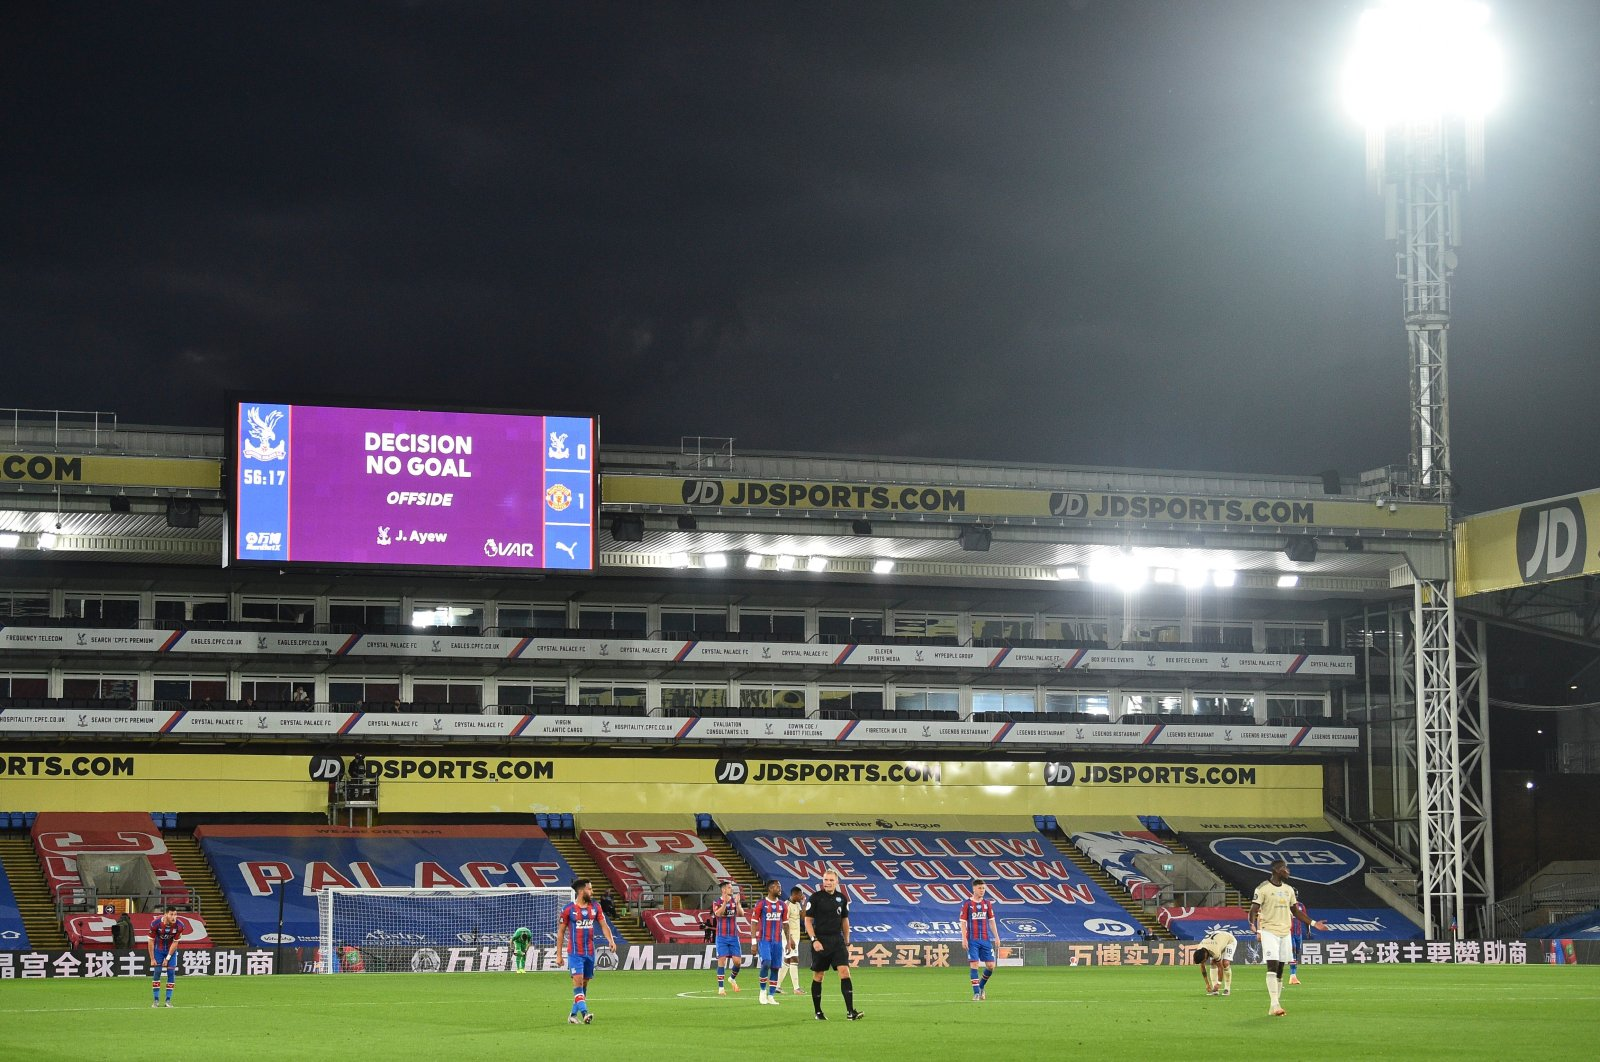 The scoreboard shows that a goal by Crystal Palace's Jordan Ayew has been disallowed by a VAR decision for offsides during the English Premier League football match between Crystal Palace and Manchester United at Selhurst Park in London, England, July 16, 2020. (AP Photo)